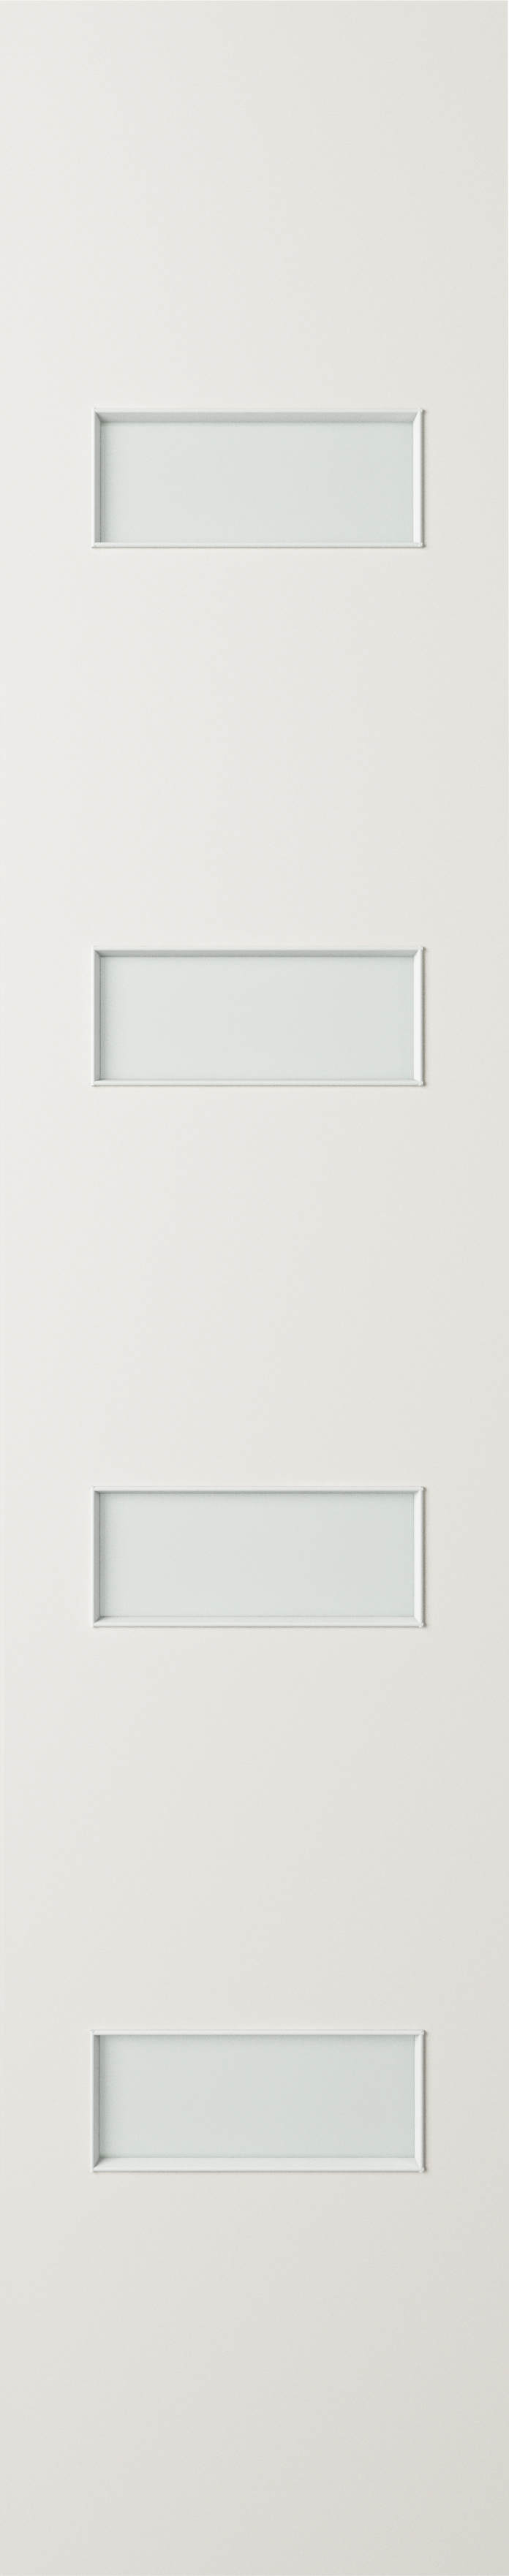 Corinthian Bushfire Routered Paint Glazed BAL 40 Sidelight Featuring 4 Horizontal Light Panels